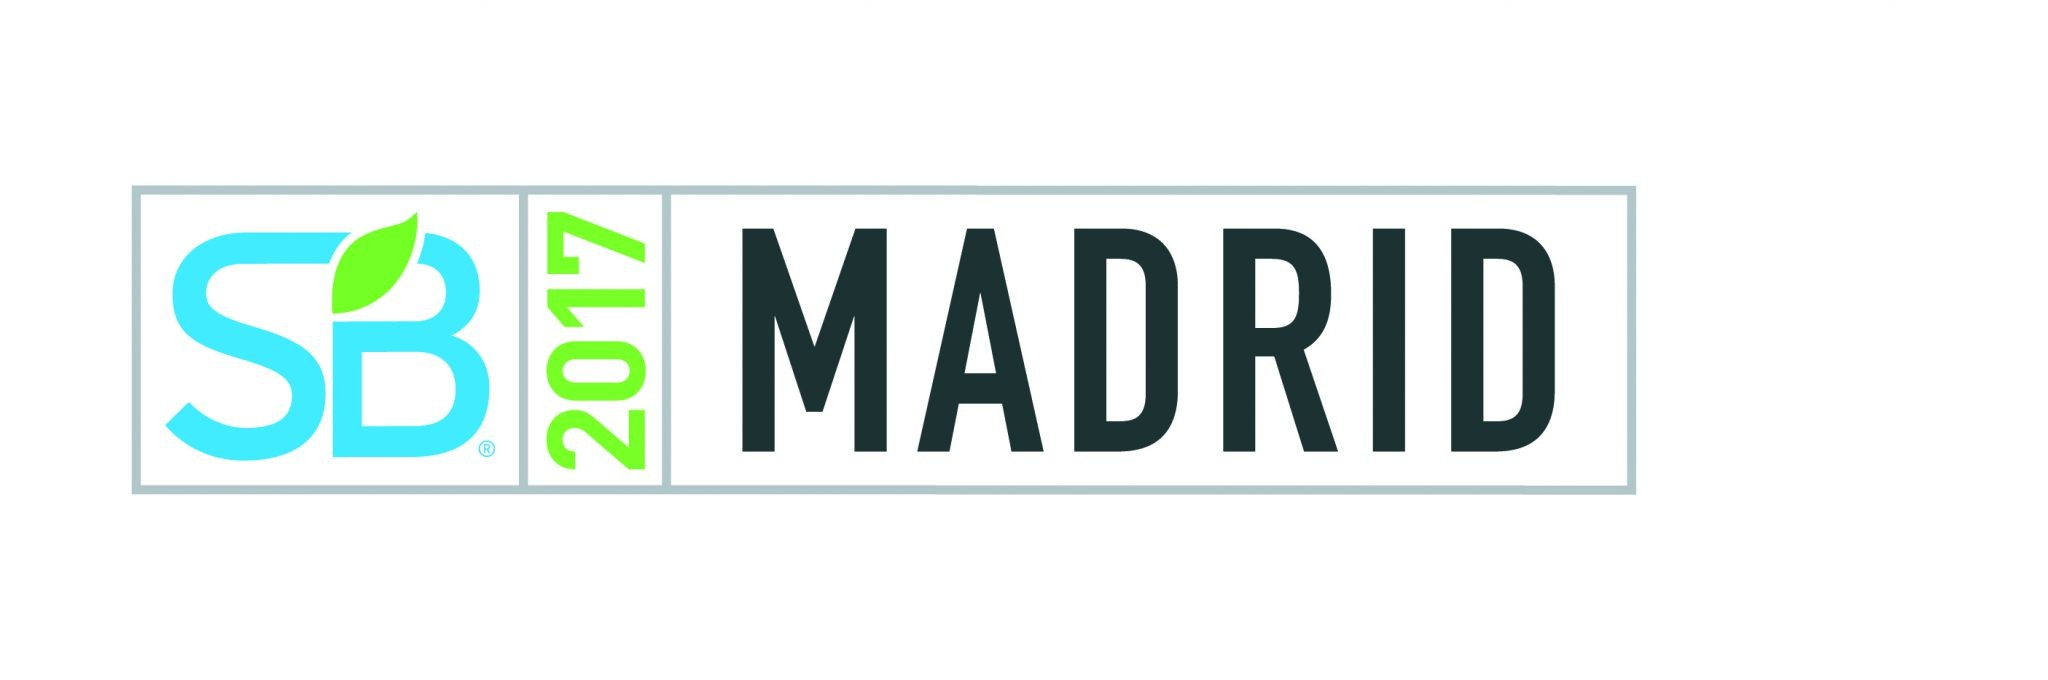 Sustainable Brands Madrid